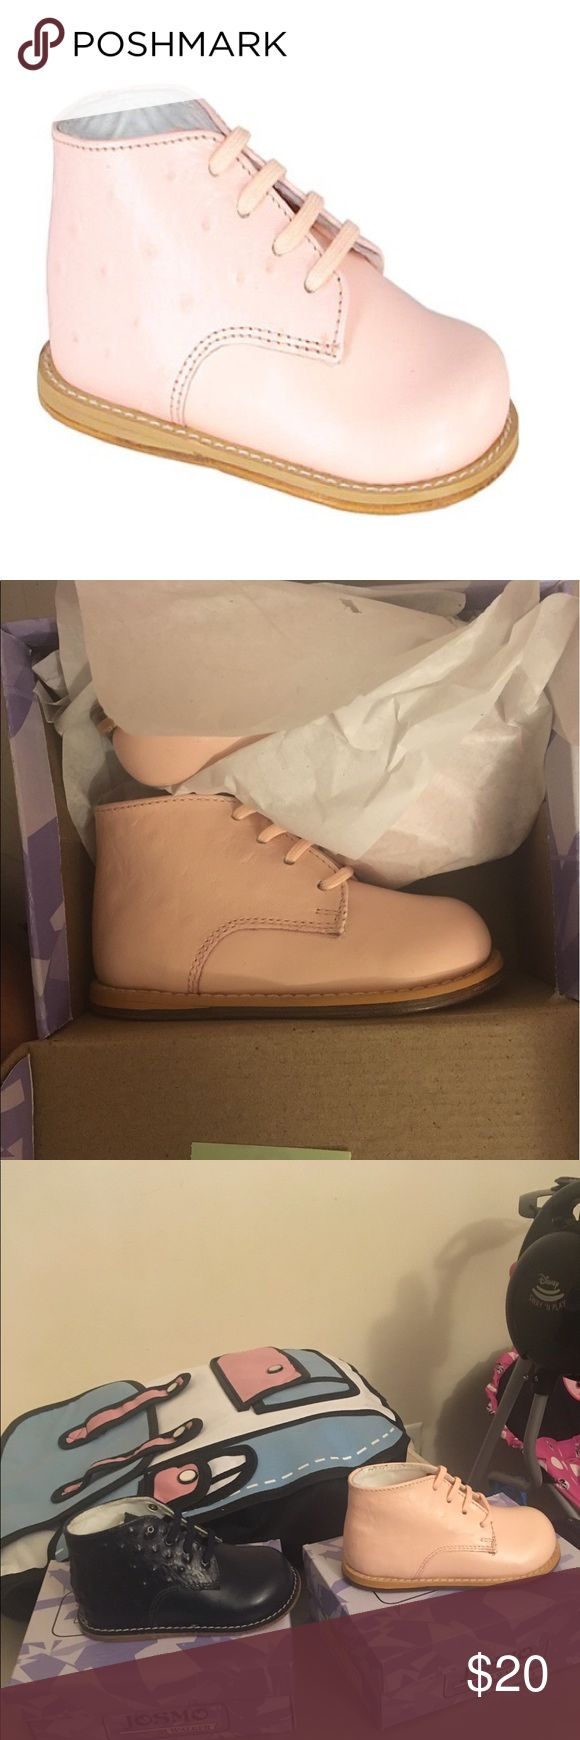 """Toddler's walking shoes Brand new """"Pink Ostrich"""" walking shoes. Still in the box 📦 size 5.5 Shoes"""